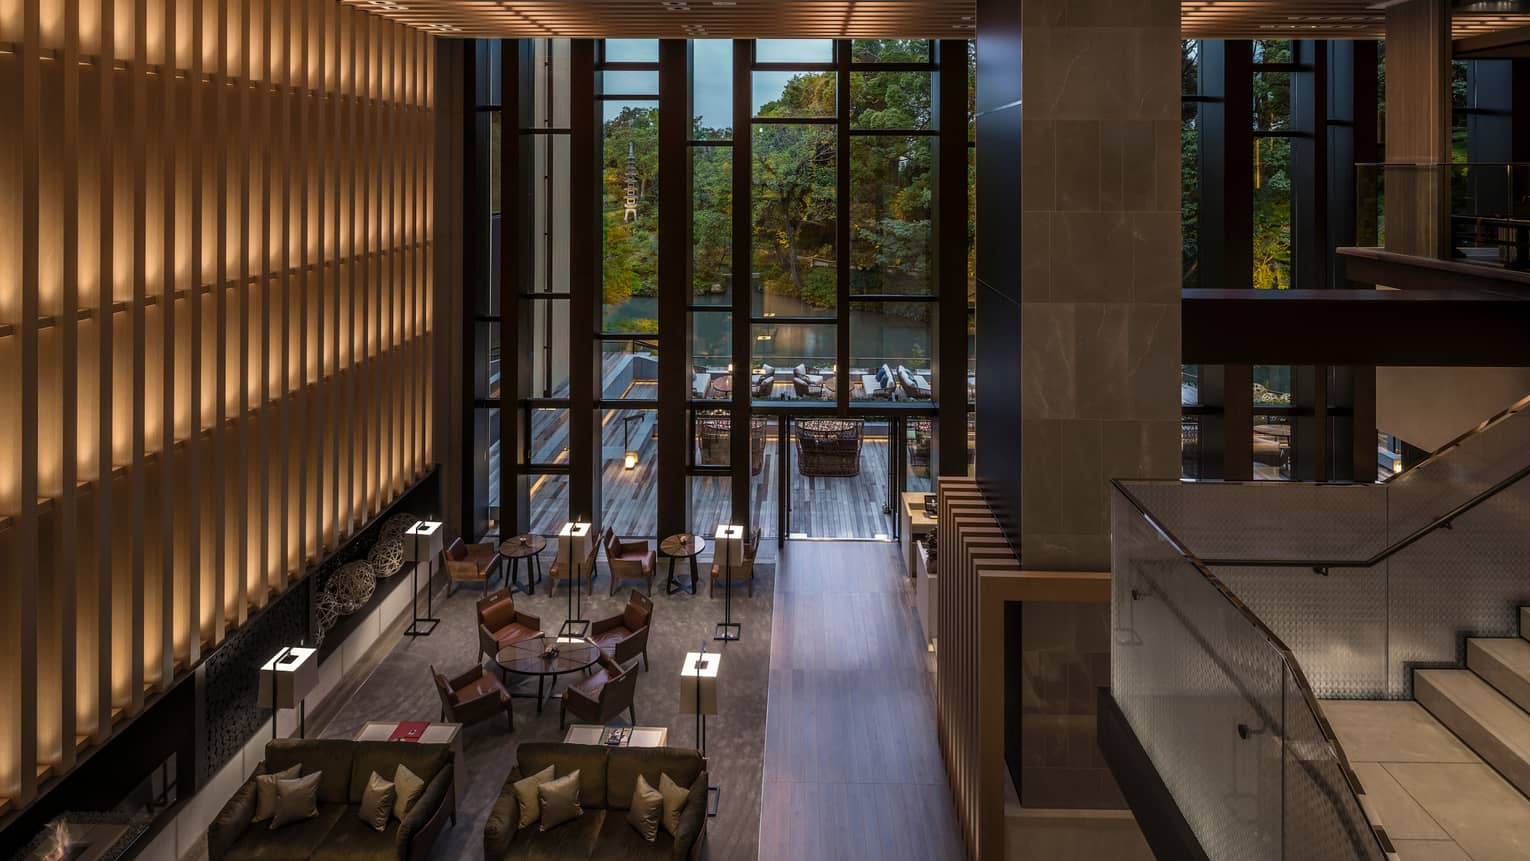 Looking down from soaring ceilings over Brasserie restaurant dining room, wood wall with lights